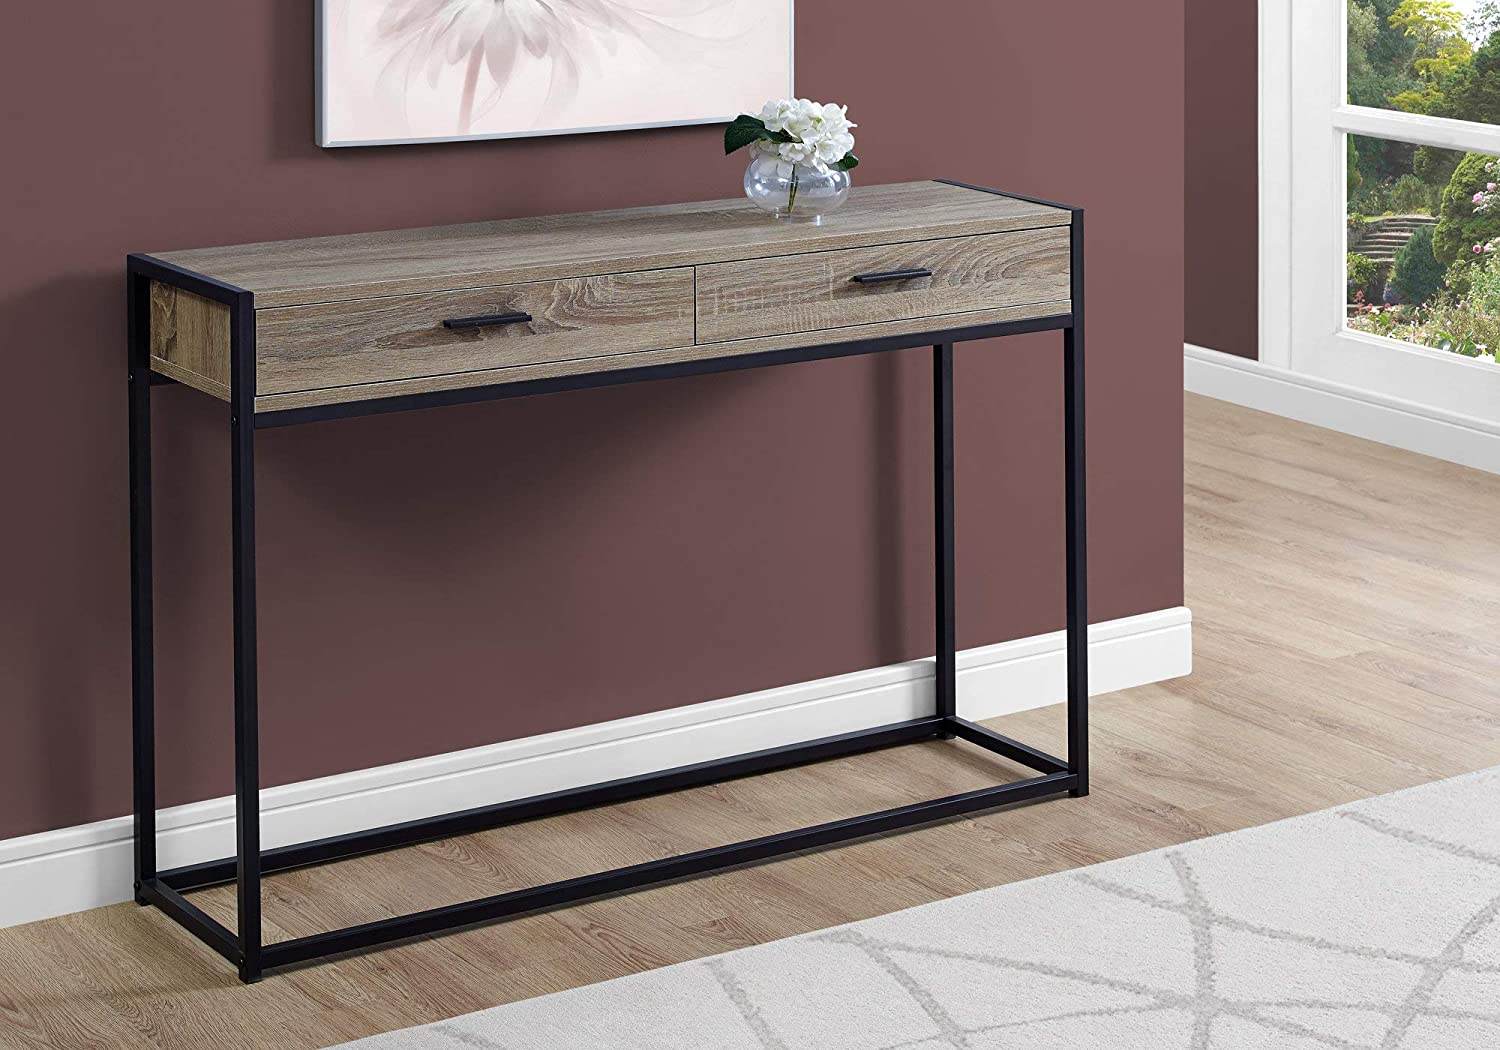 - Amazon.com: Monarch Specialties I Accent, Console Table, TAUPE